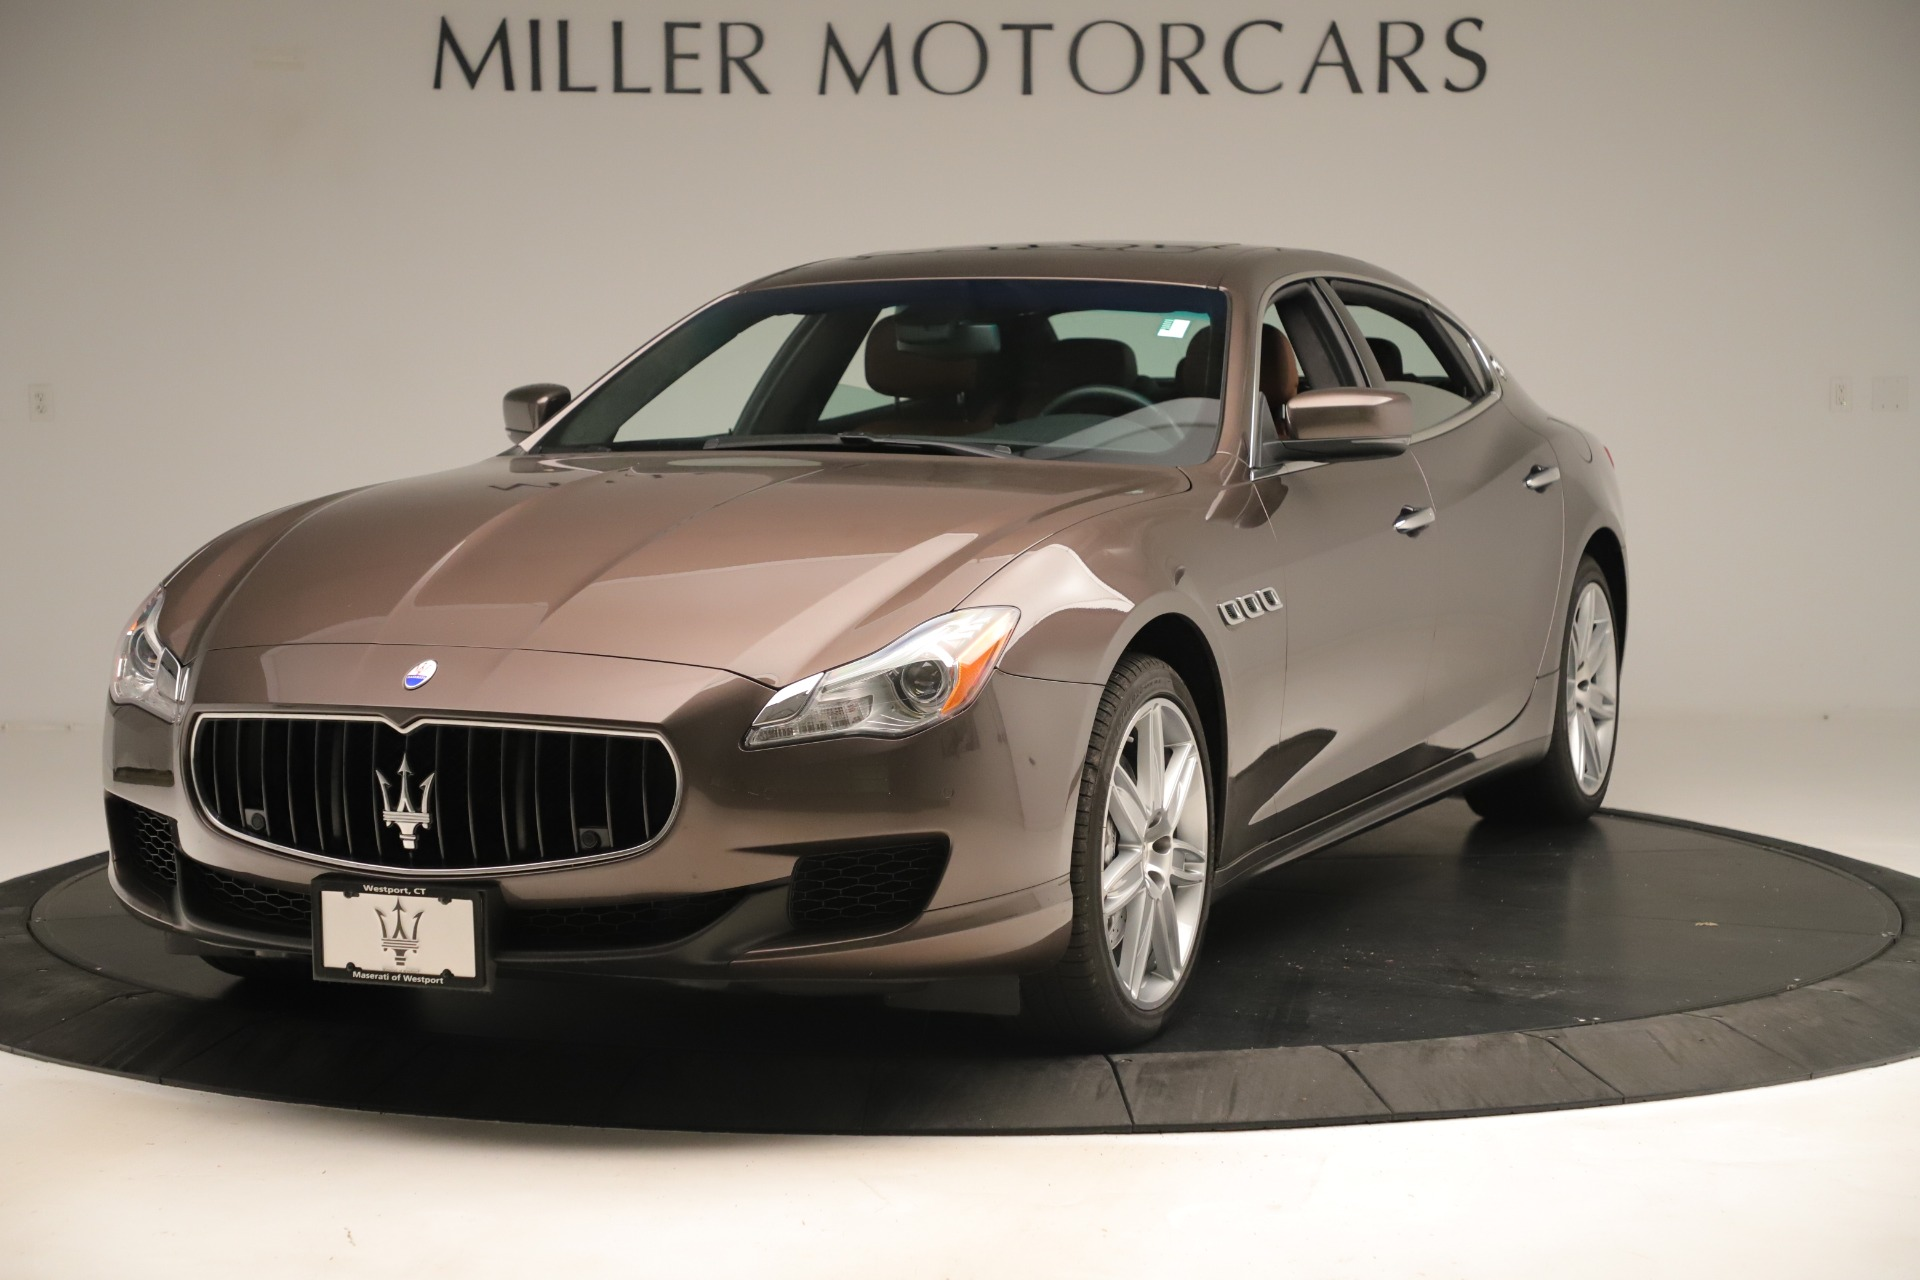 Used 2014 Maserati Quattroporte S Q4 for sale Sold at Bentley Greenwich in Greenwich CT 06830 1